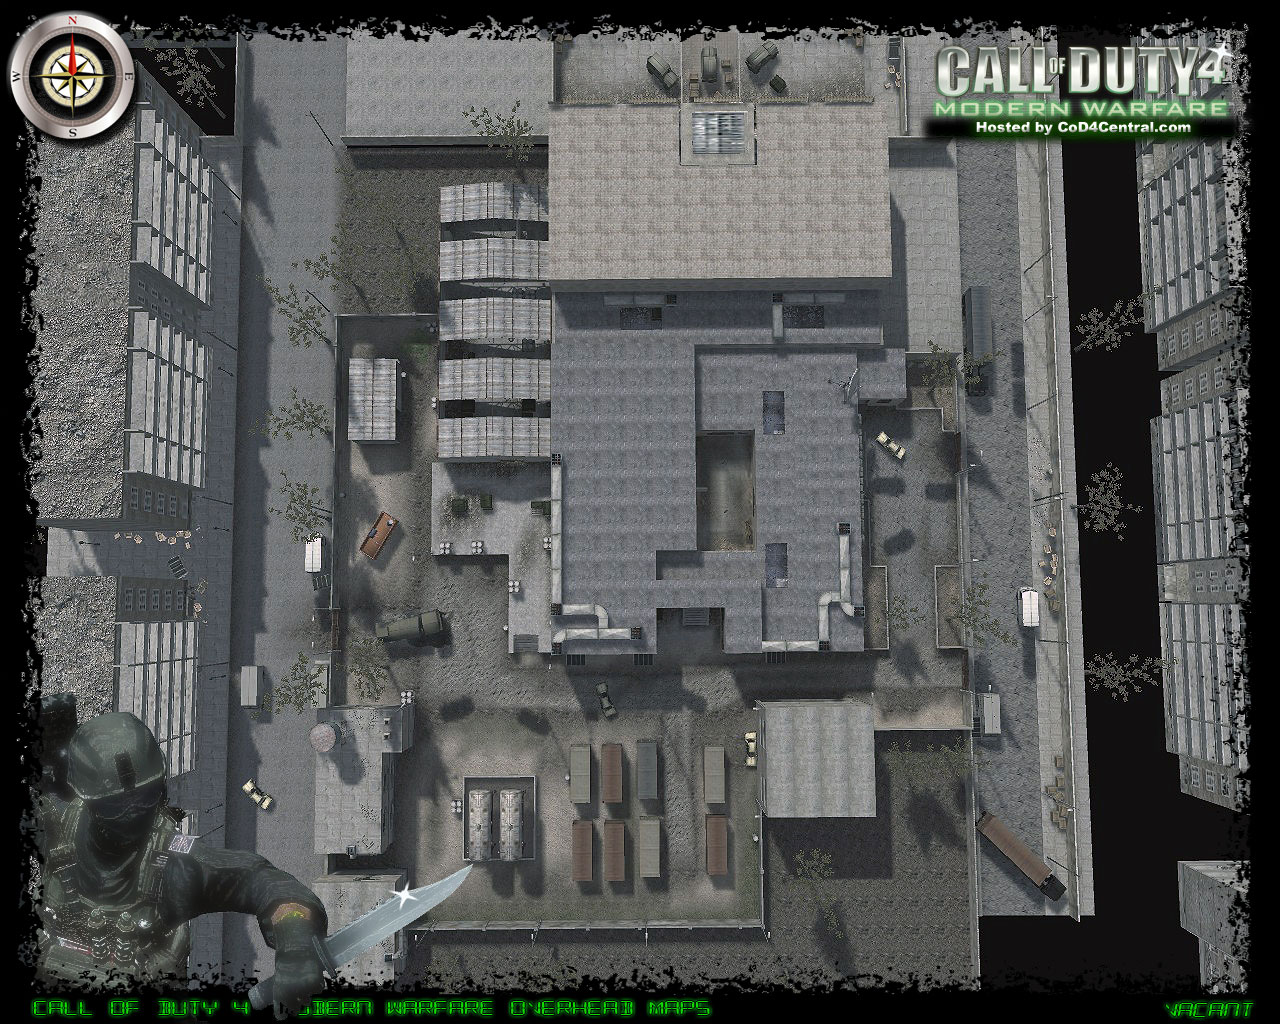 Mw3 3d Wallpapers Cod4 Central Cod4 Maps Vacant High Resolution Modern